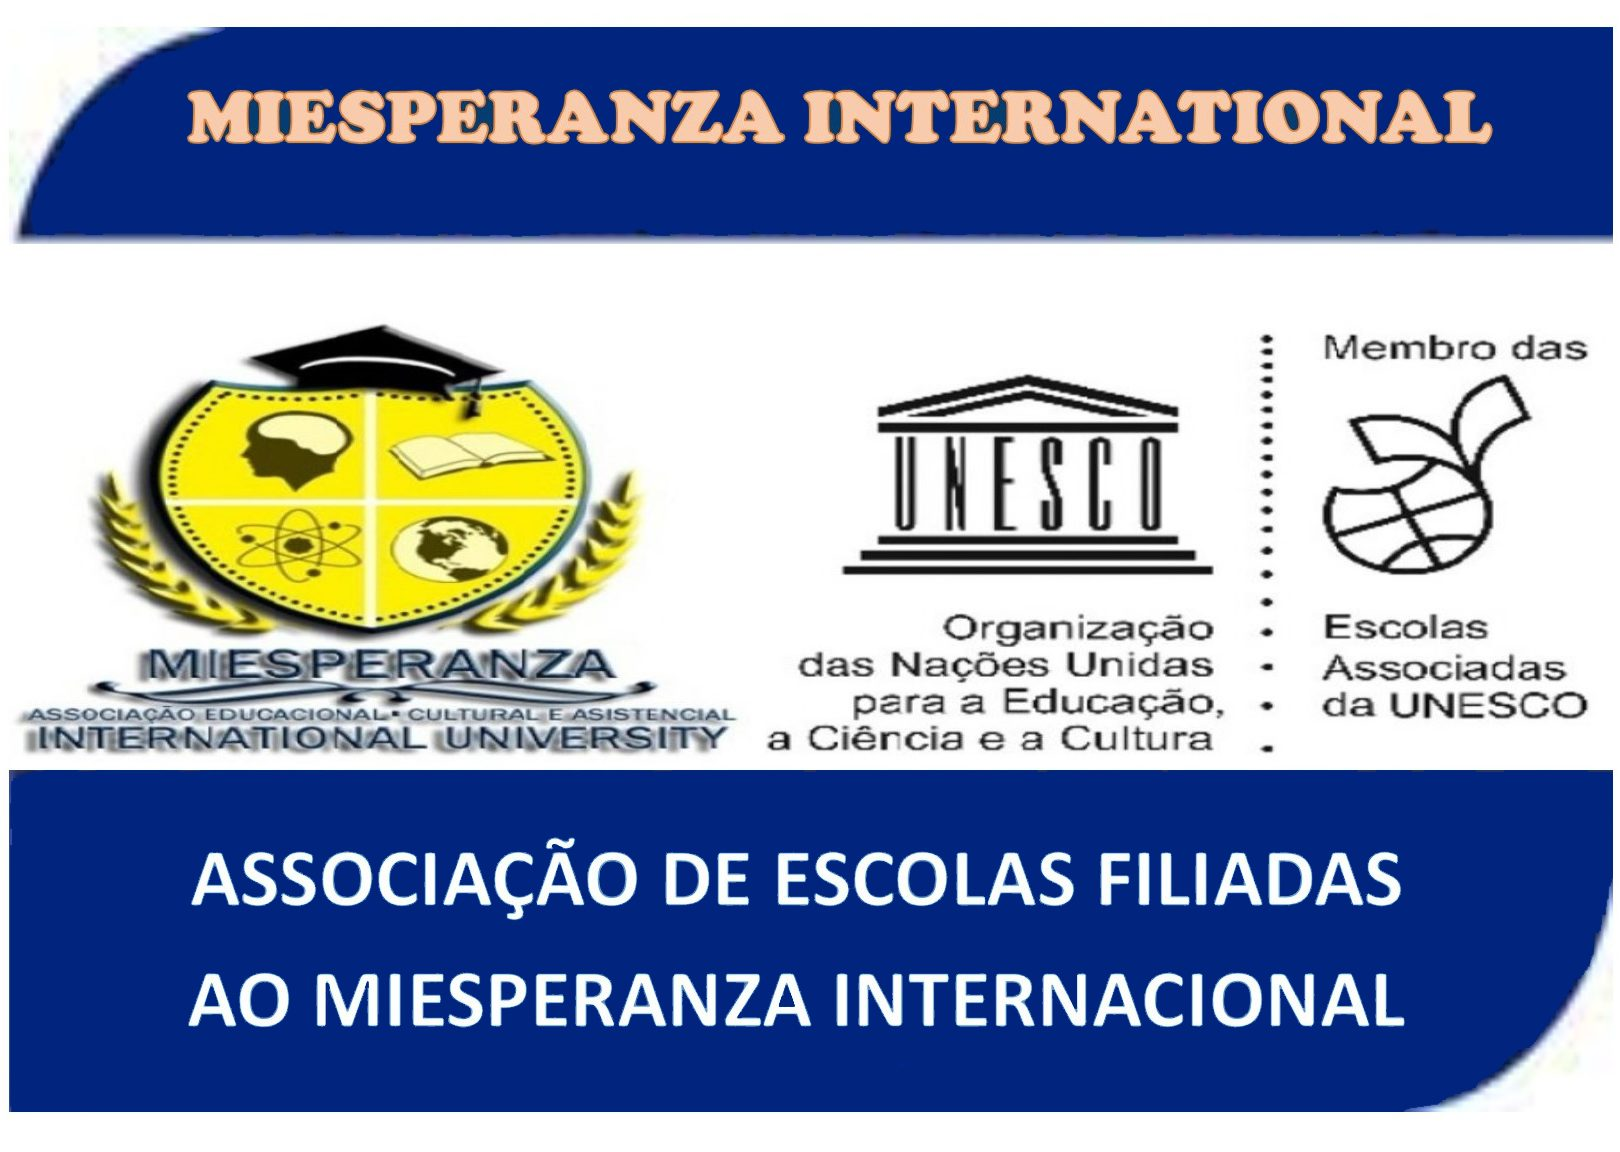 Miesperanza International University